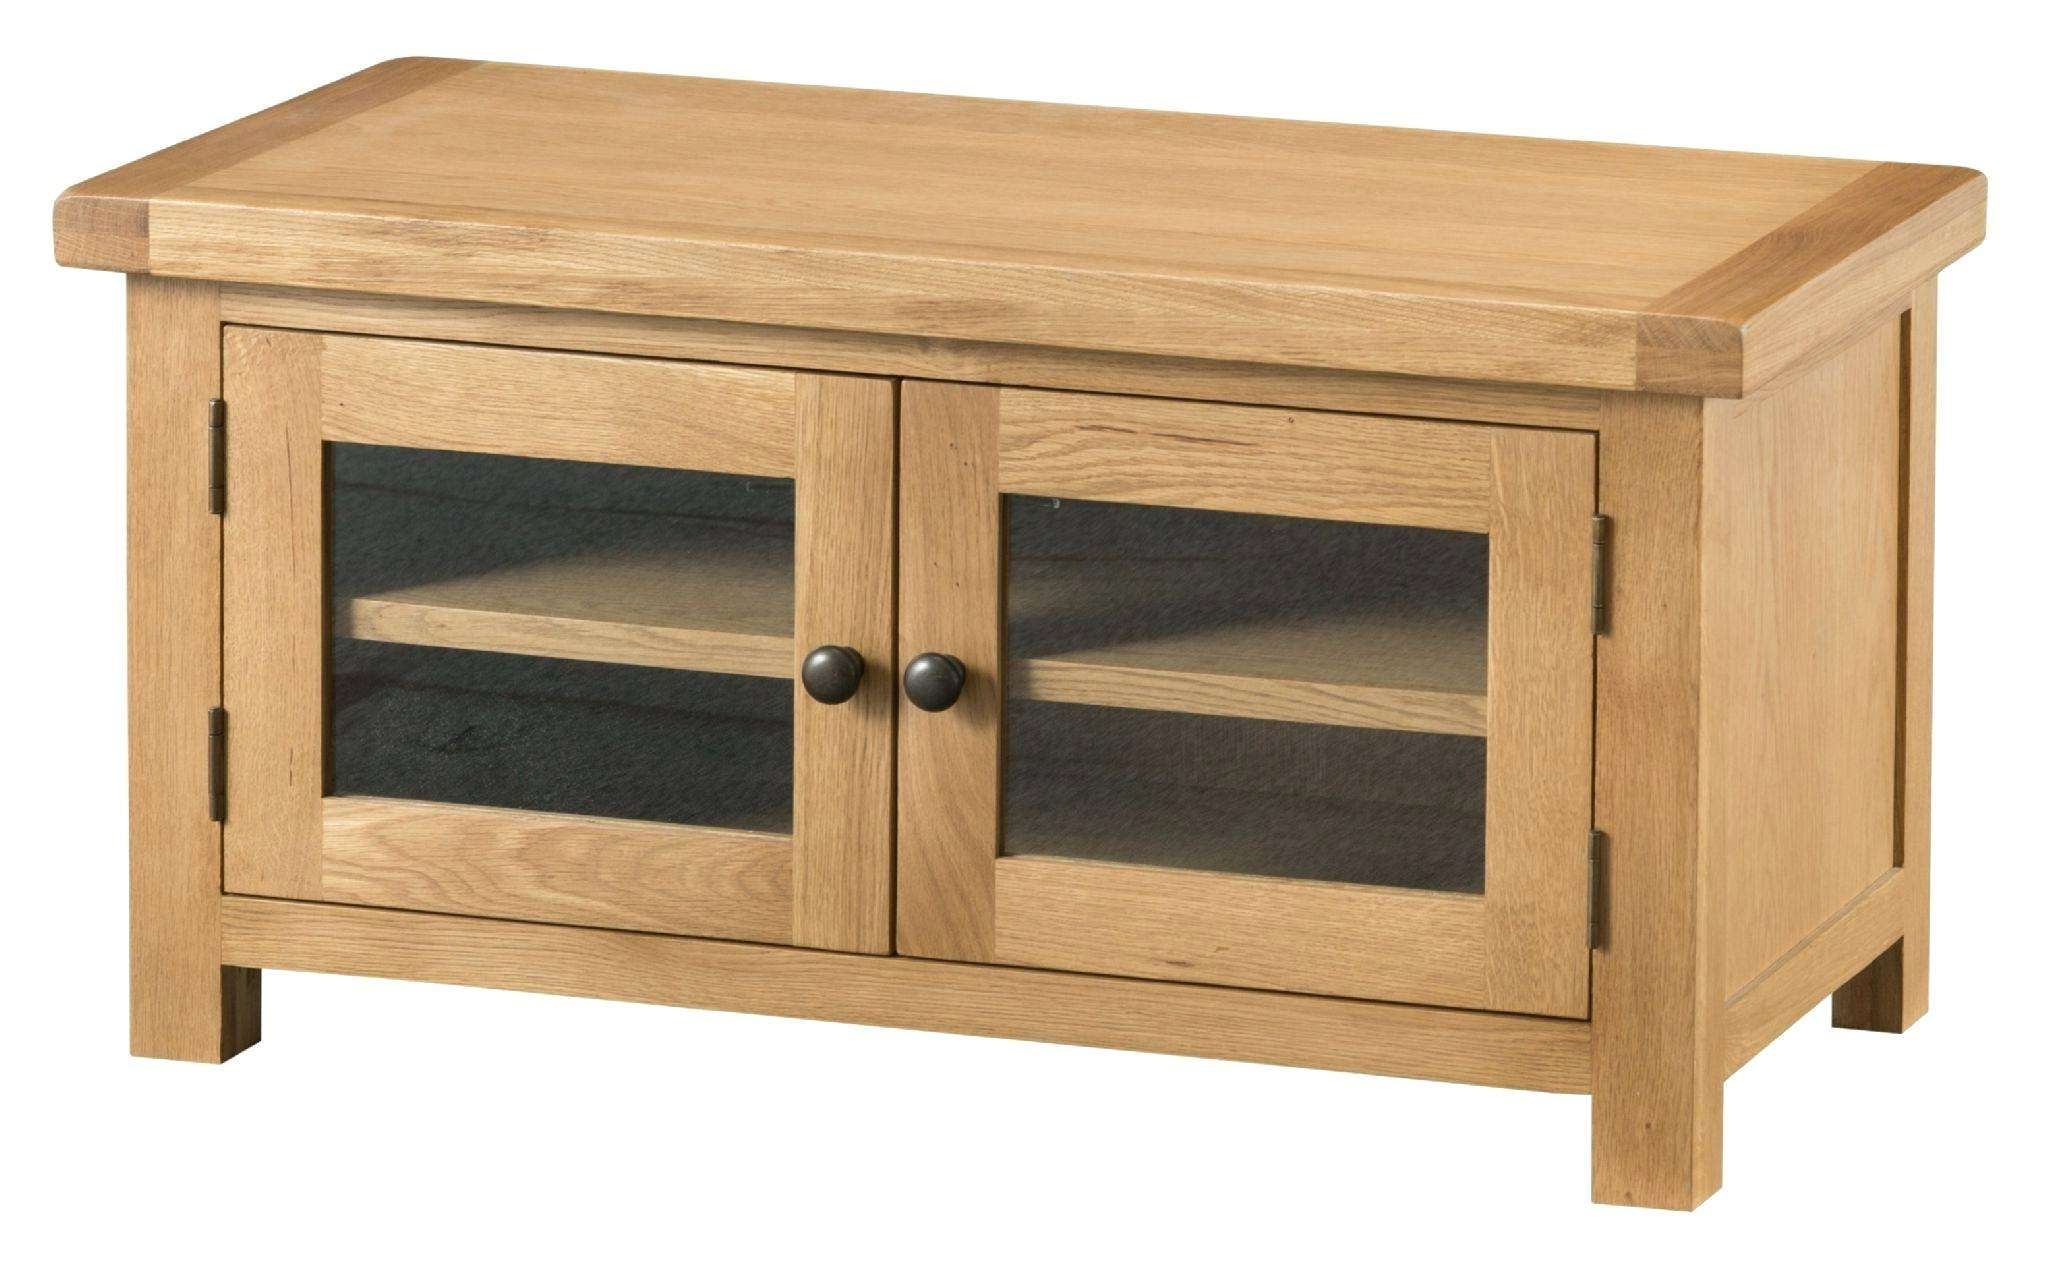 Tv Cabinets For Flat Screens With Doors Wall Mount Oakley Rustic With Oak Tv Cabinets For Flat Screens With Doors (View 20 of 20)